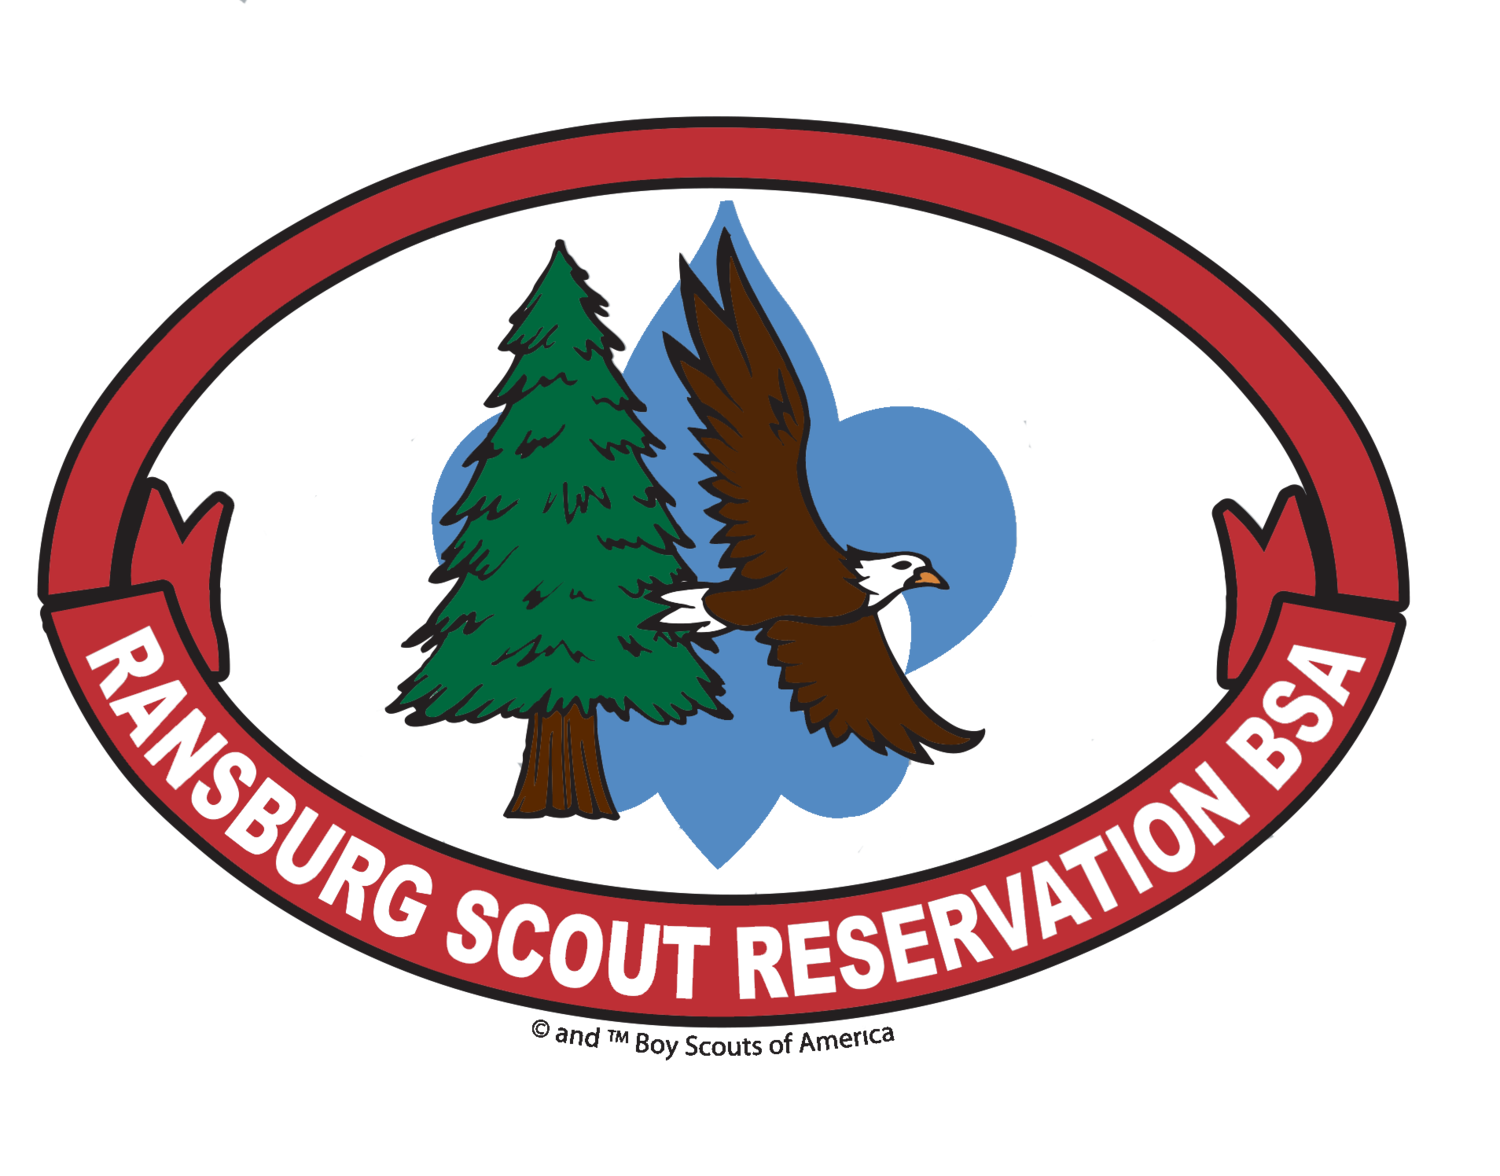 At camp ransburg scout. Schedule clipart activity schedule